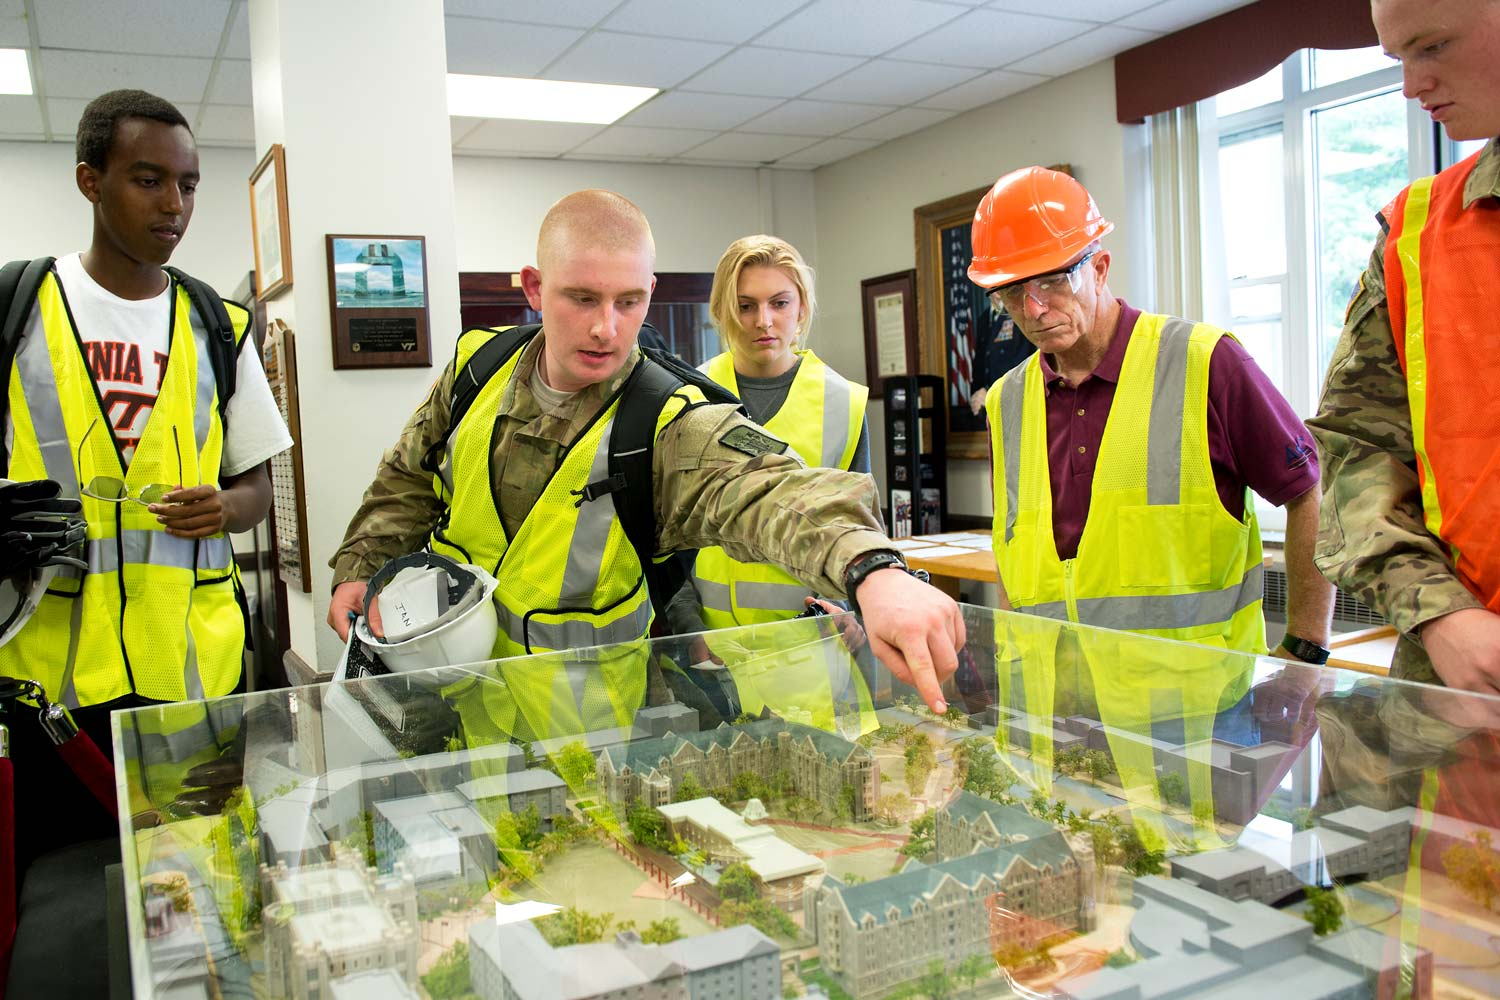 Meyer's-Lawson students look over a table with a 3D model of the new Virginia Tech Cadet dorms.